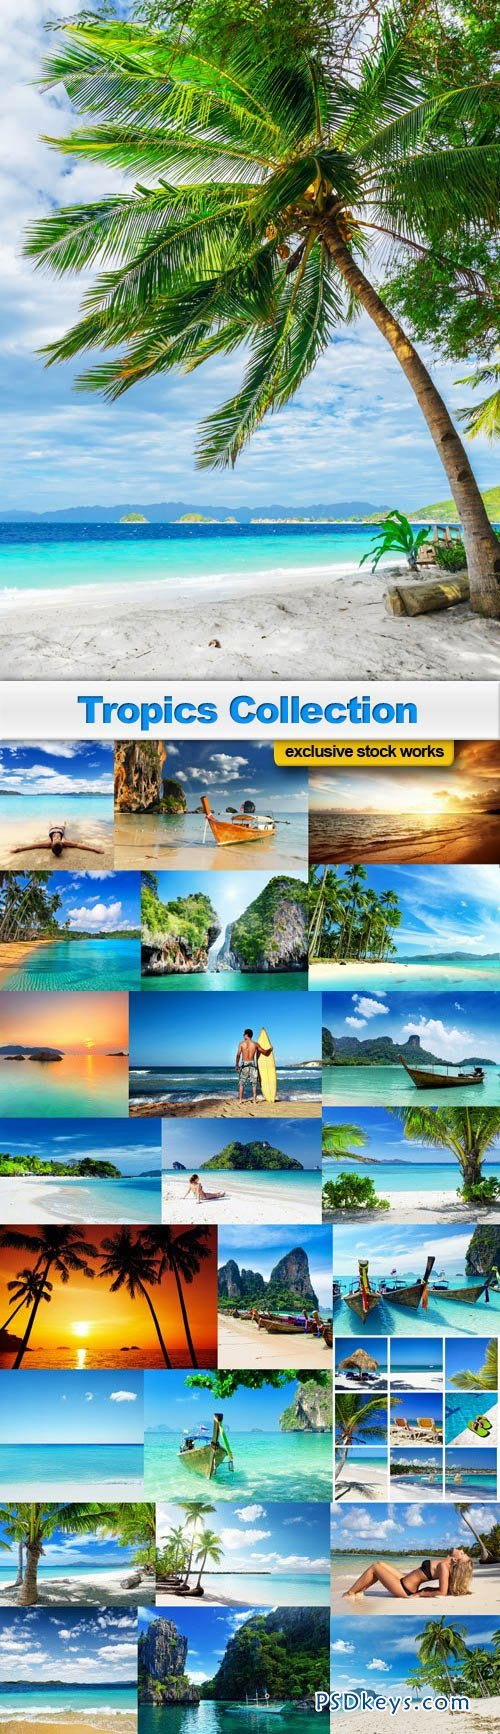 Tropics Collection - 25 UHQxJPEG